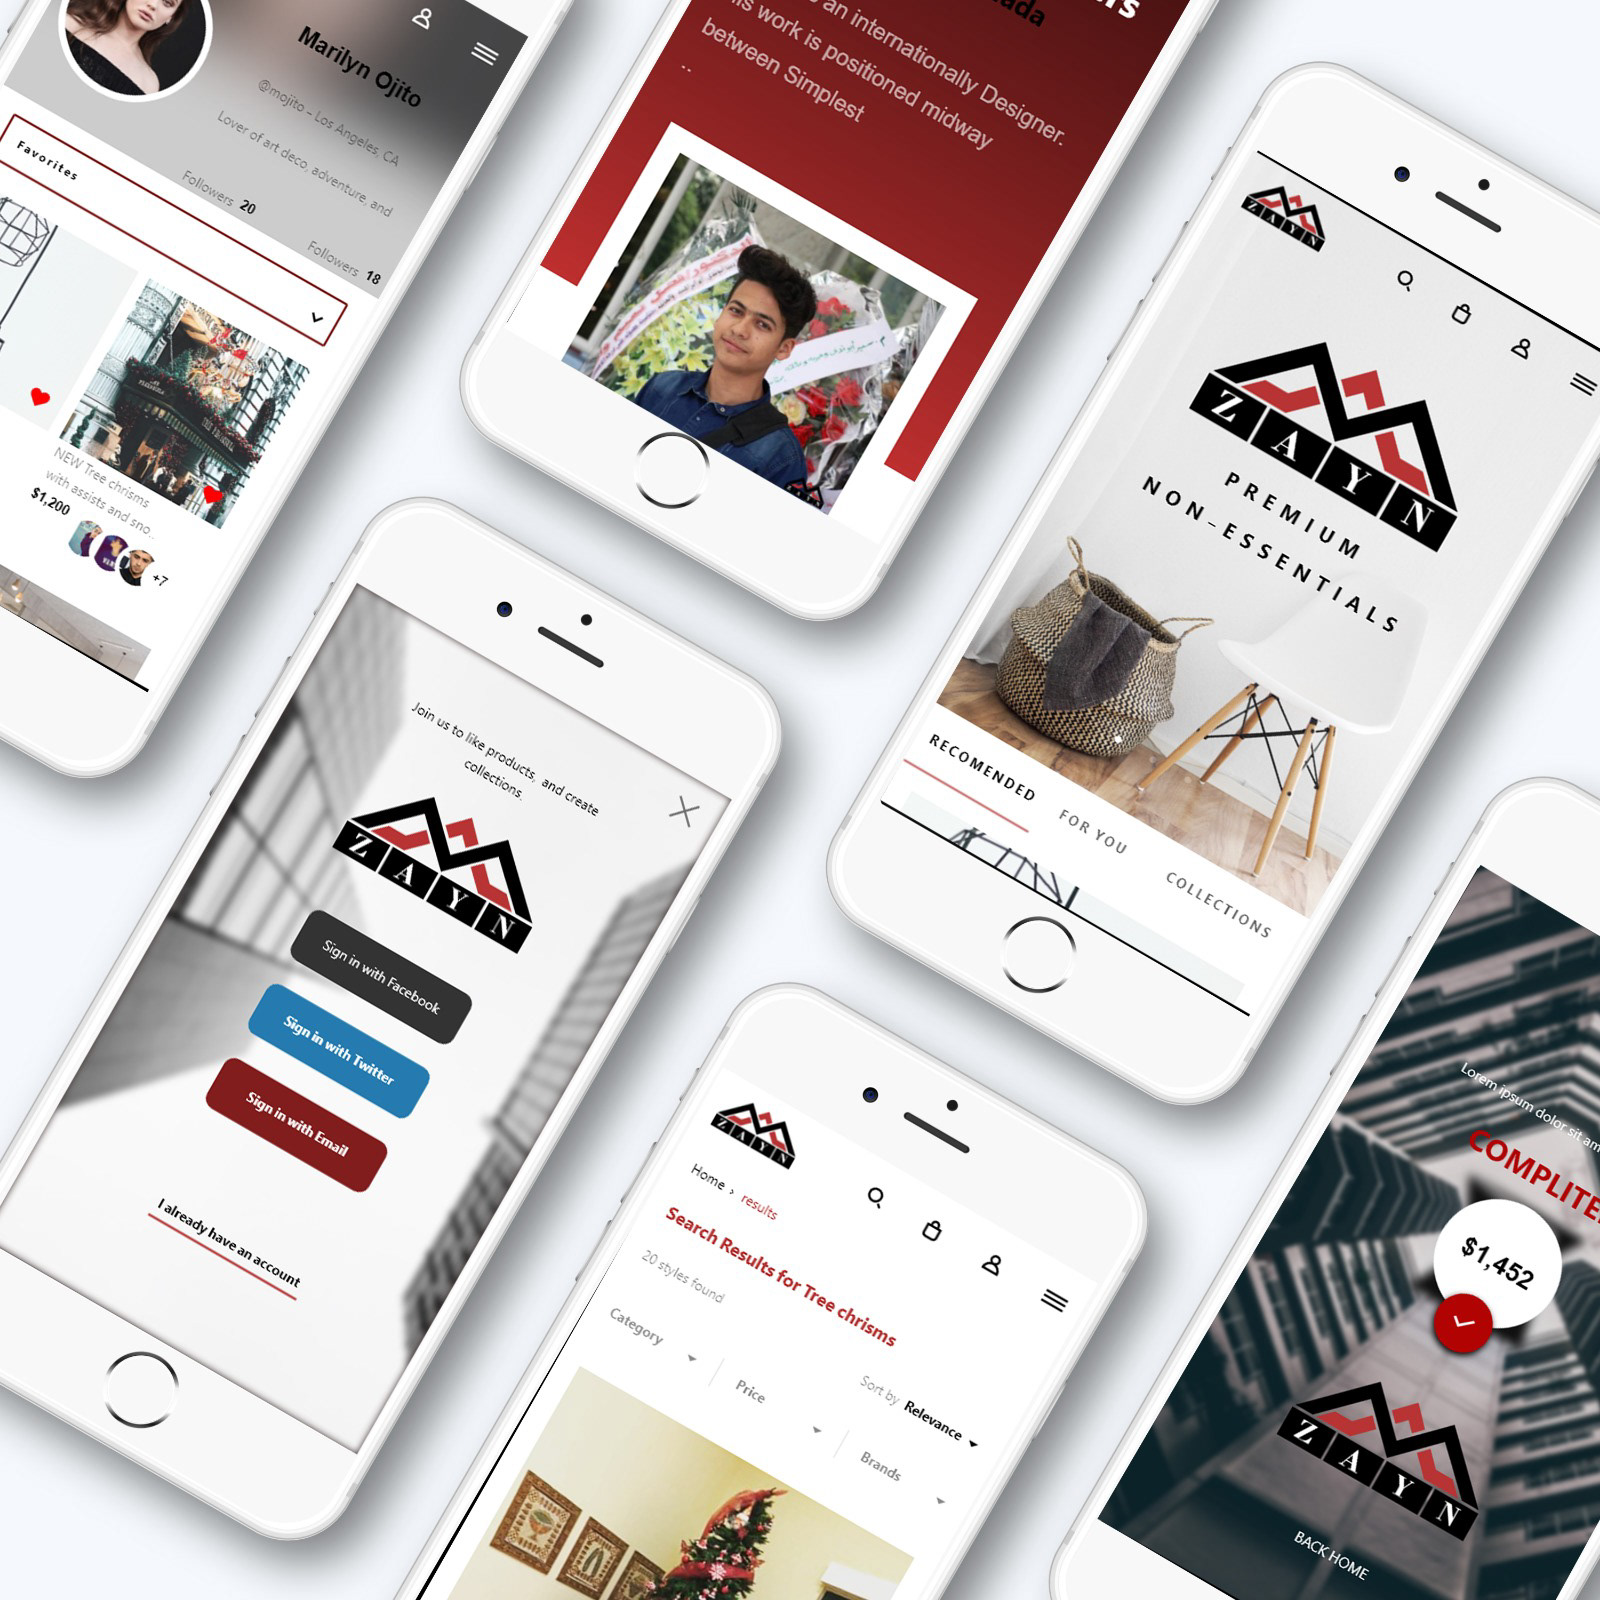 Mobile app Store - Web mobile store